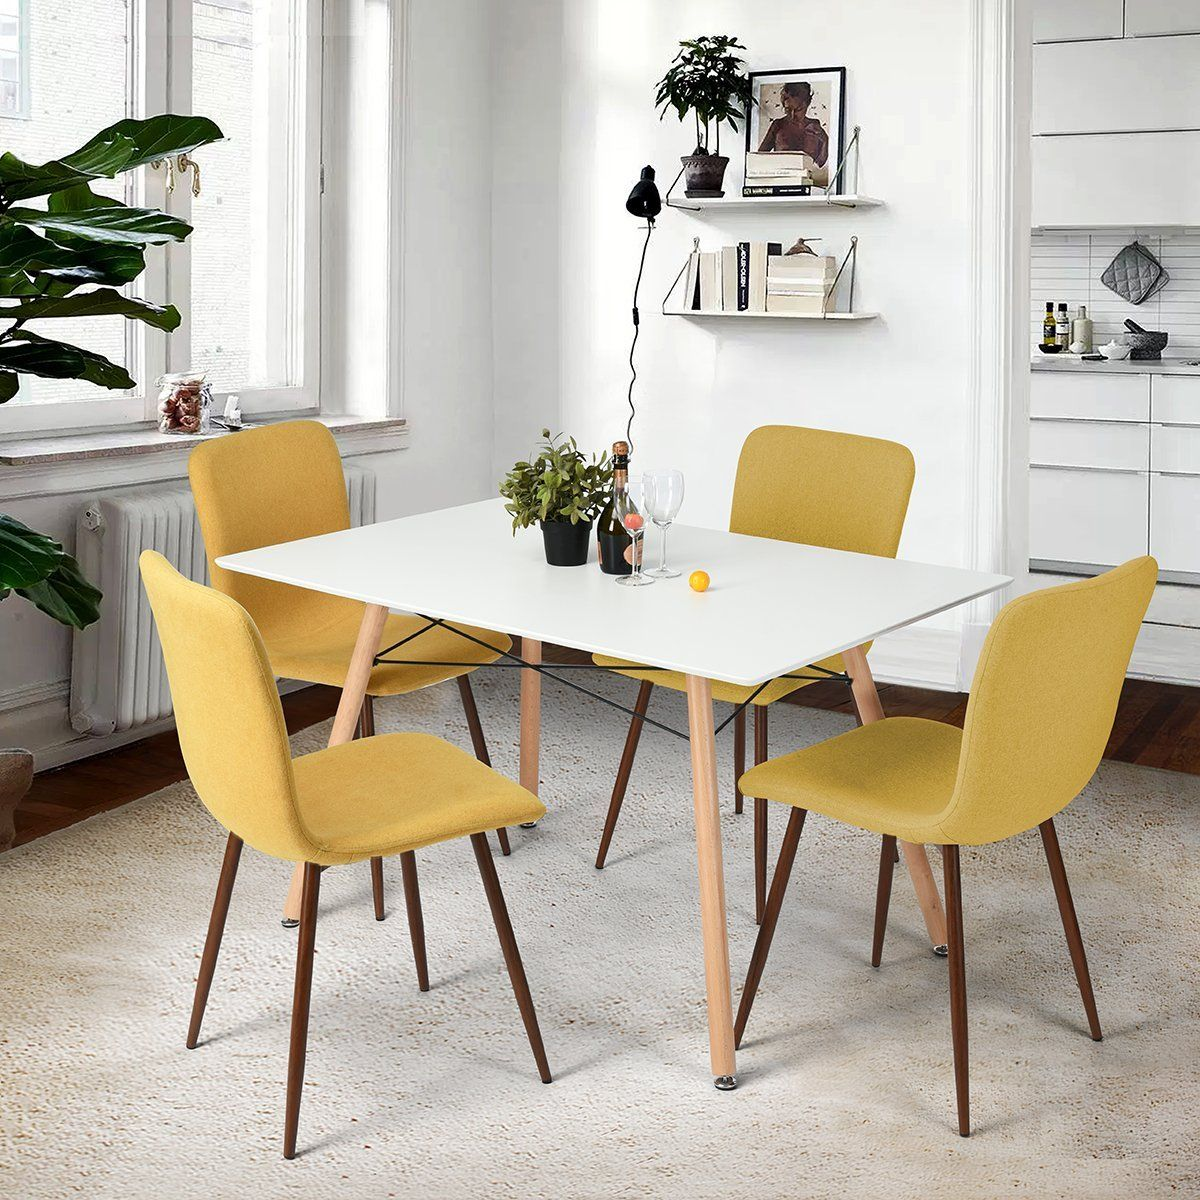 Dining Room Chairs Yellow amazon - homycasa set of 4 eames style fabric cushion chairs